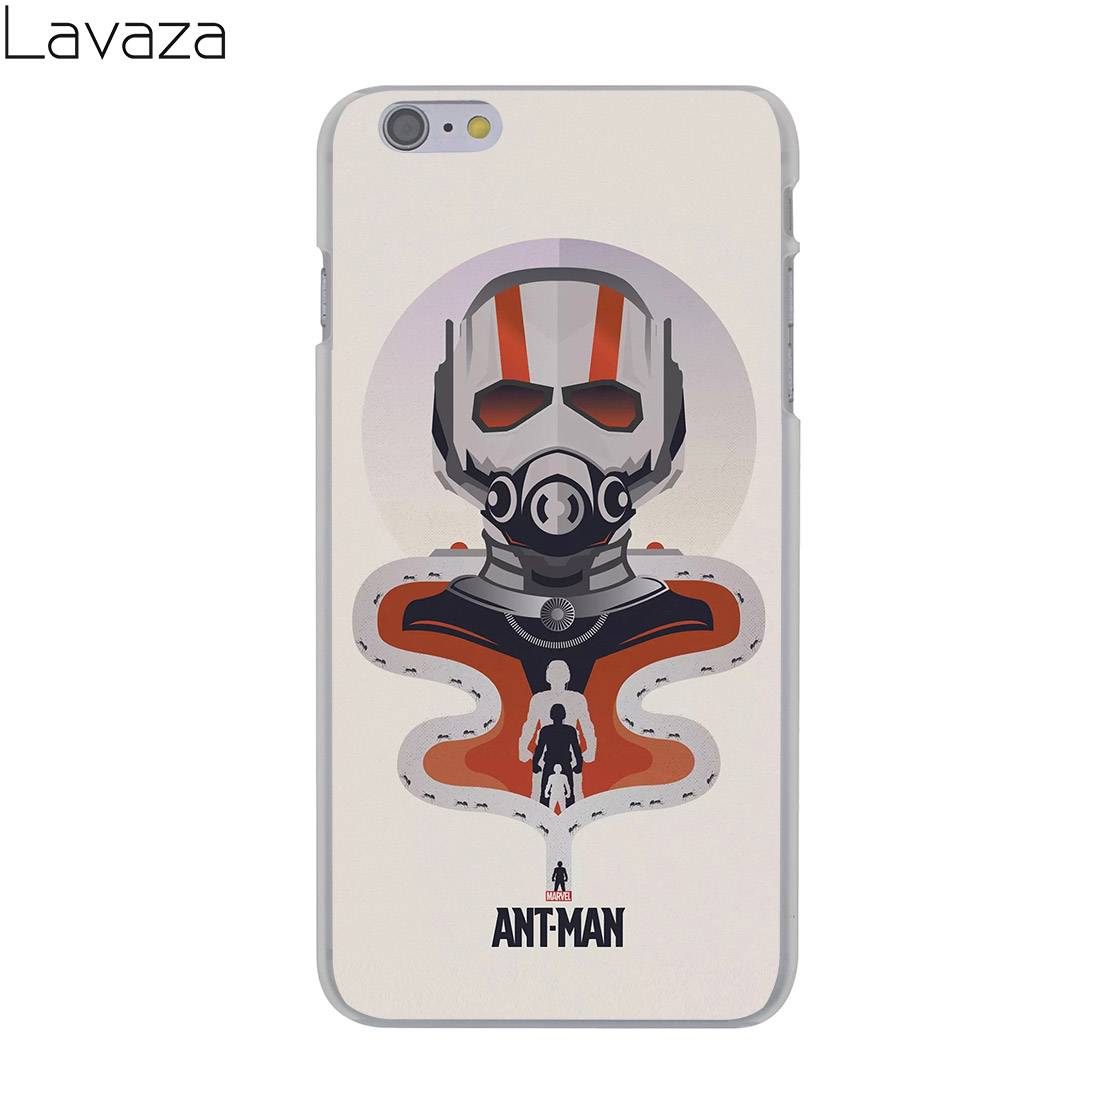 Lavaza ant man marvel ant man superhero hard cover case for apple lavaza ant man marvel ant man superhero hard cover case for apple iphone 8 7 6 6s plus 5 5s se 5c 4 4s x 10 coque shell in half wrapped case from cellphones biocorpaavc